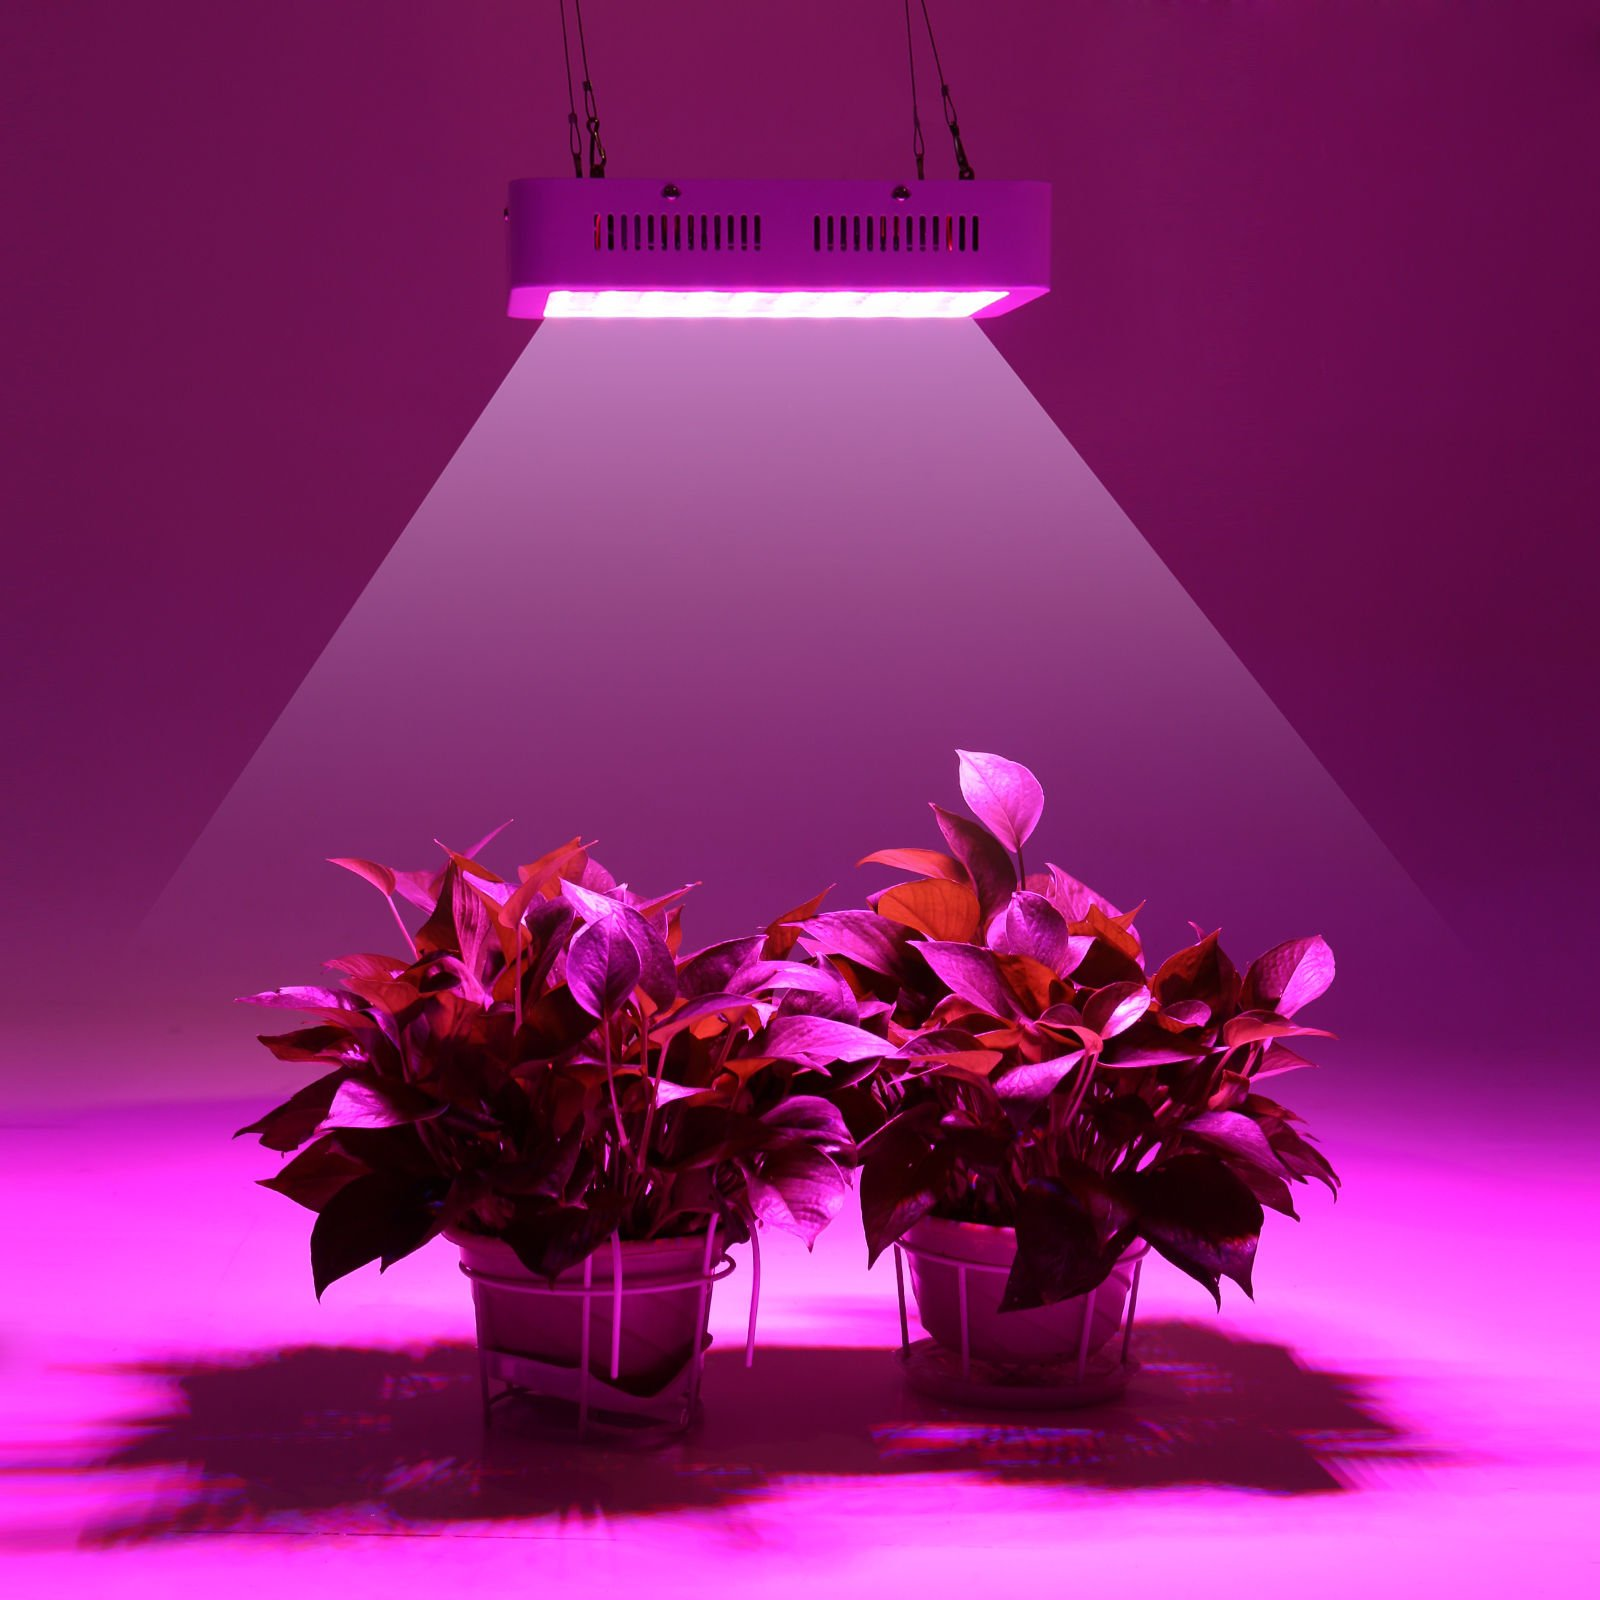 LED grow light,800W (80x10W) Plant Grow Light, Double Chips Super Bright Full Spectrum Hydroponic Medical Plant Grow Lights for Indoor Garden Hydroponic Greenhouse Flower